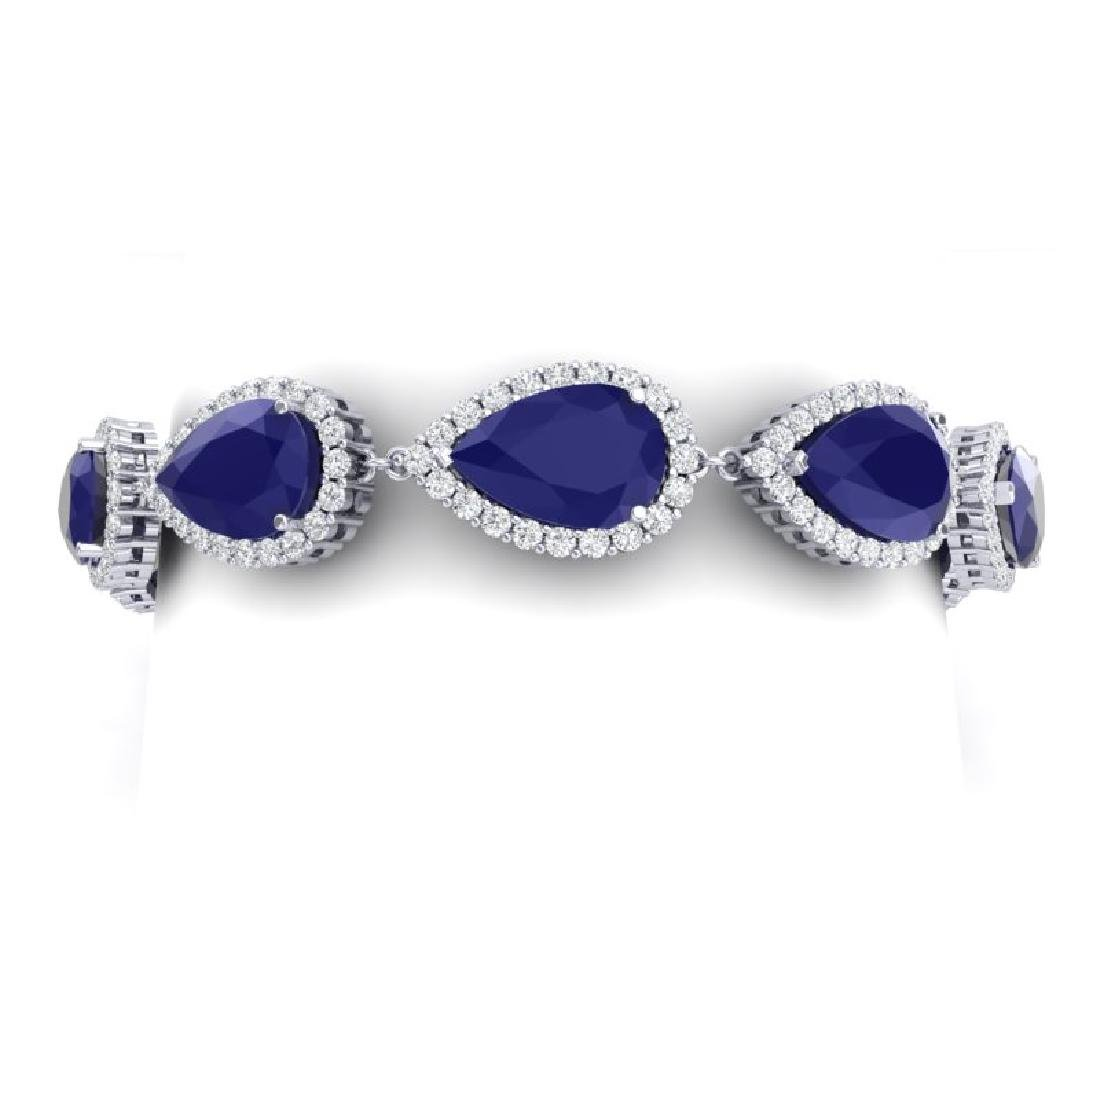 42 CTW Royalty Sapphire & VS Diamond Bracelet 18K White